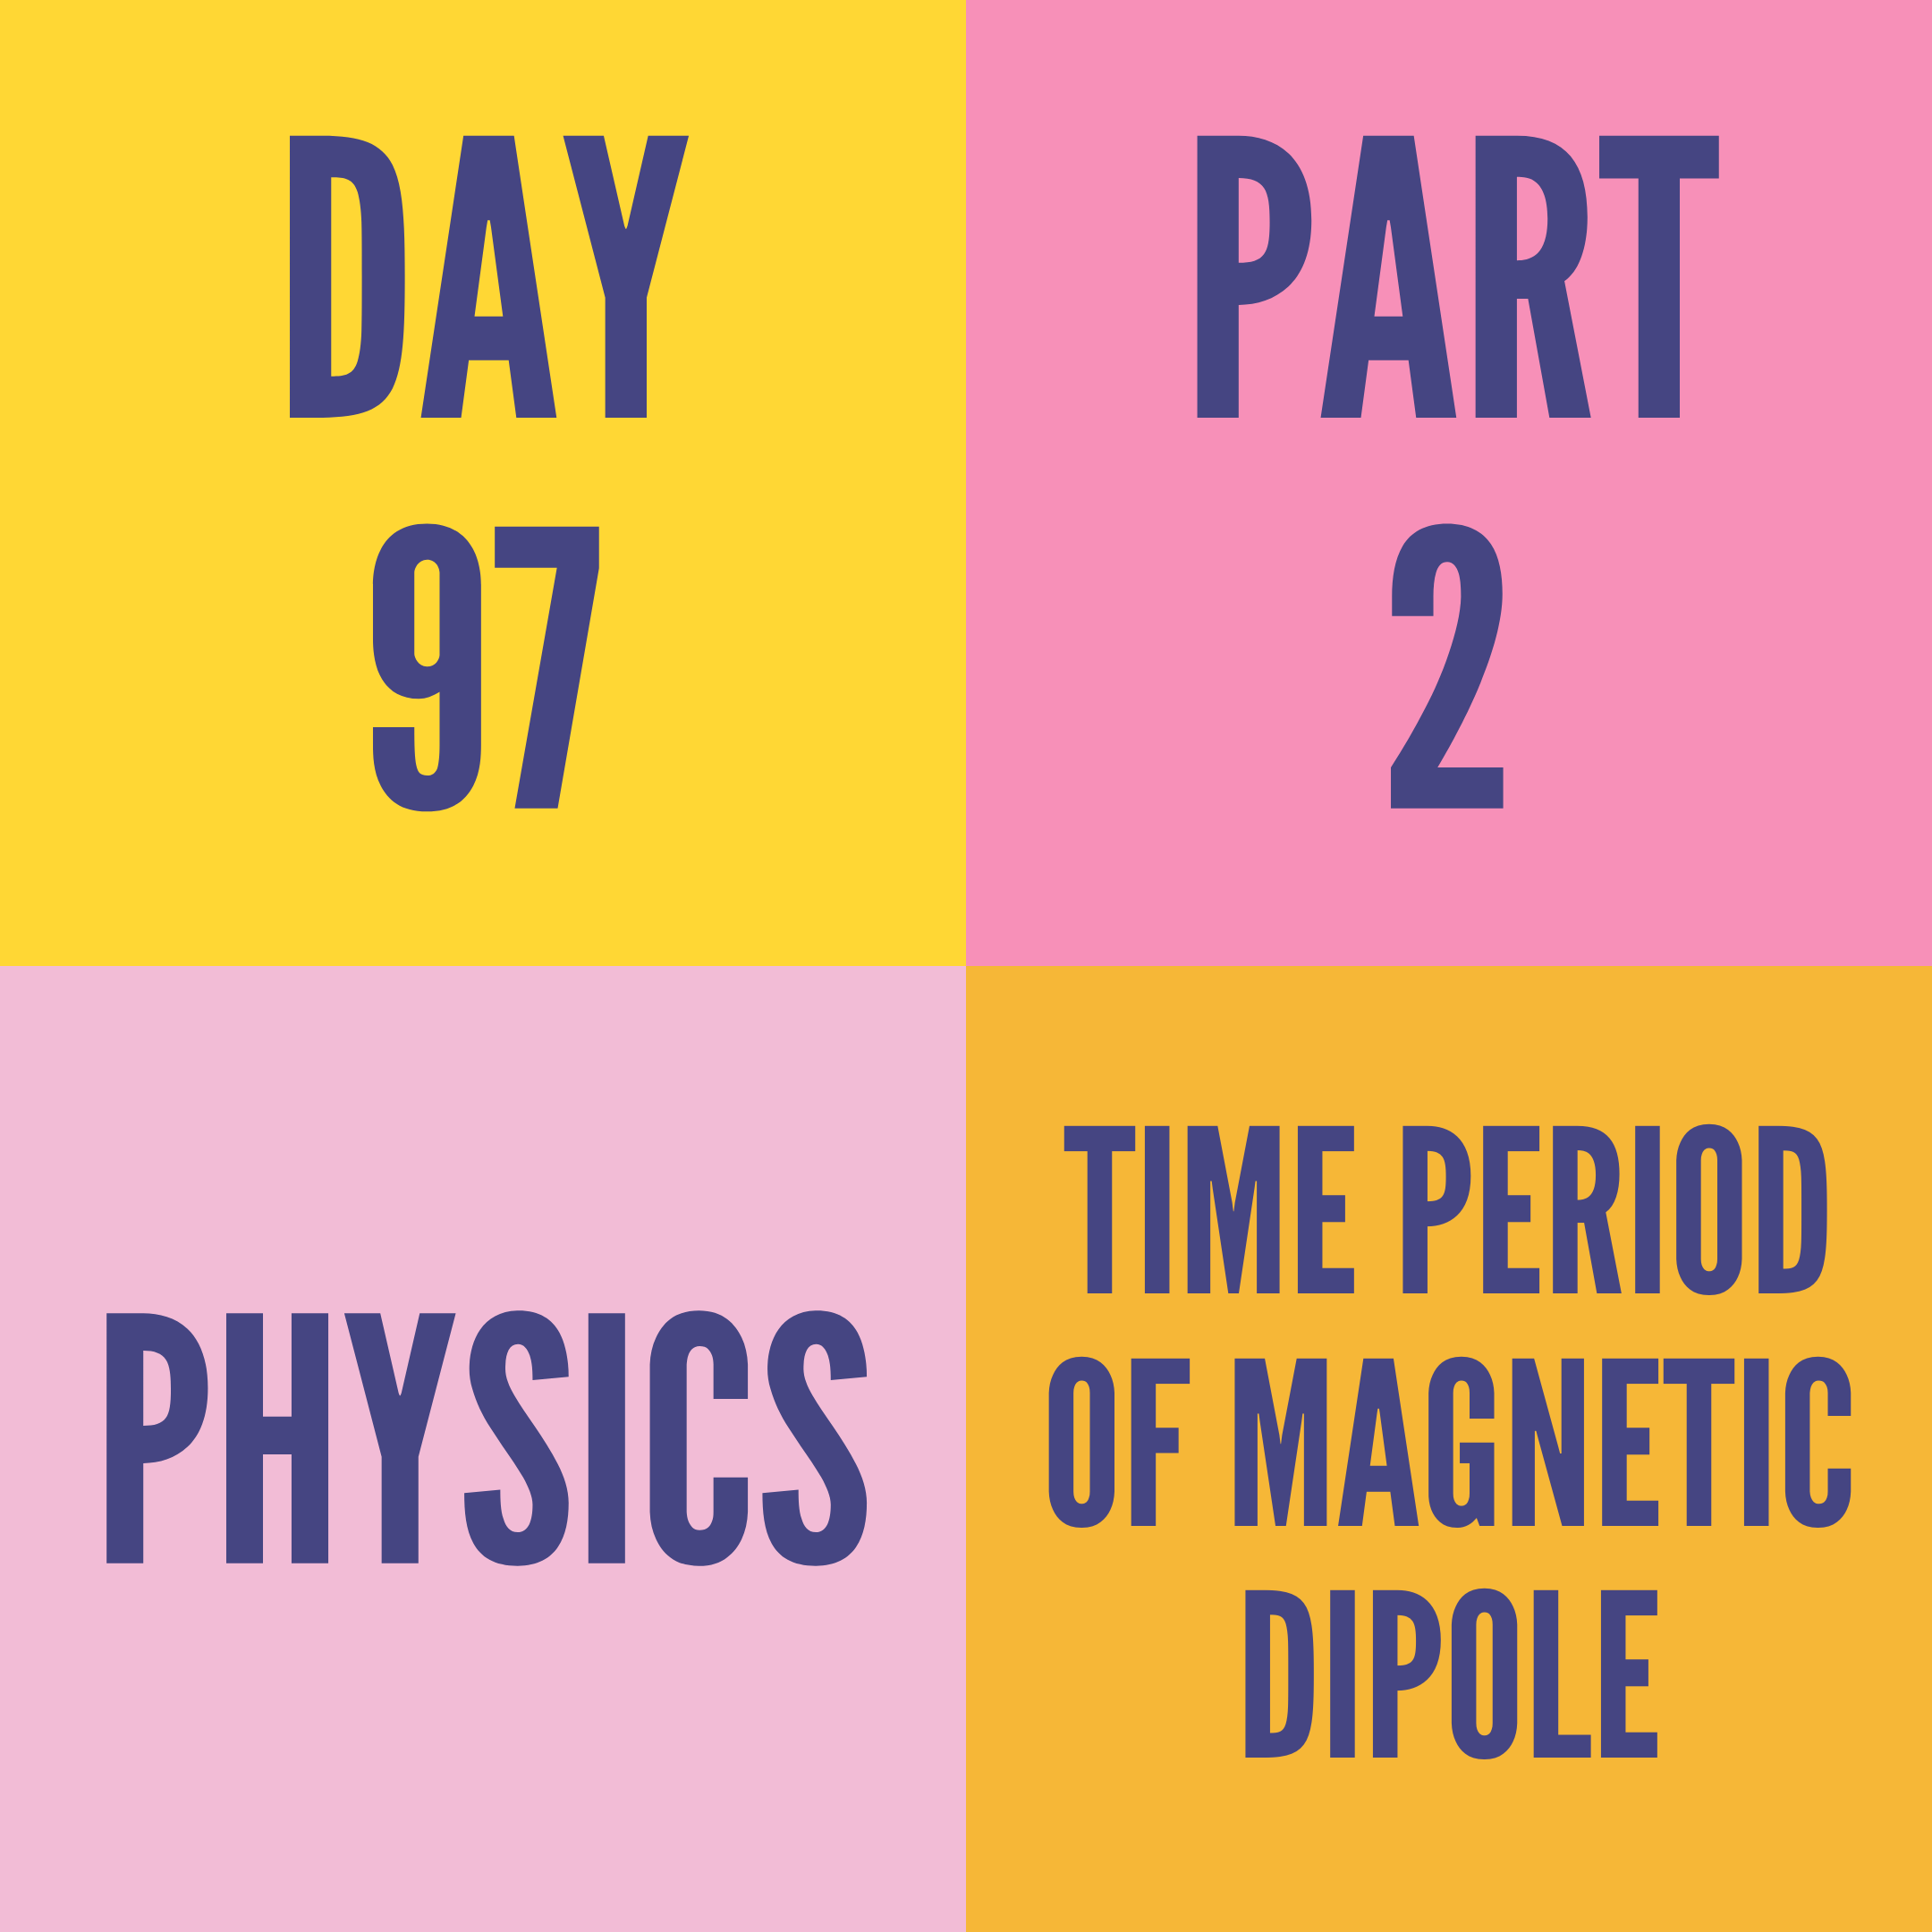 DAY-97 PART-2 TIME PERIOD OF MAGNETIC DIPOLE